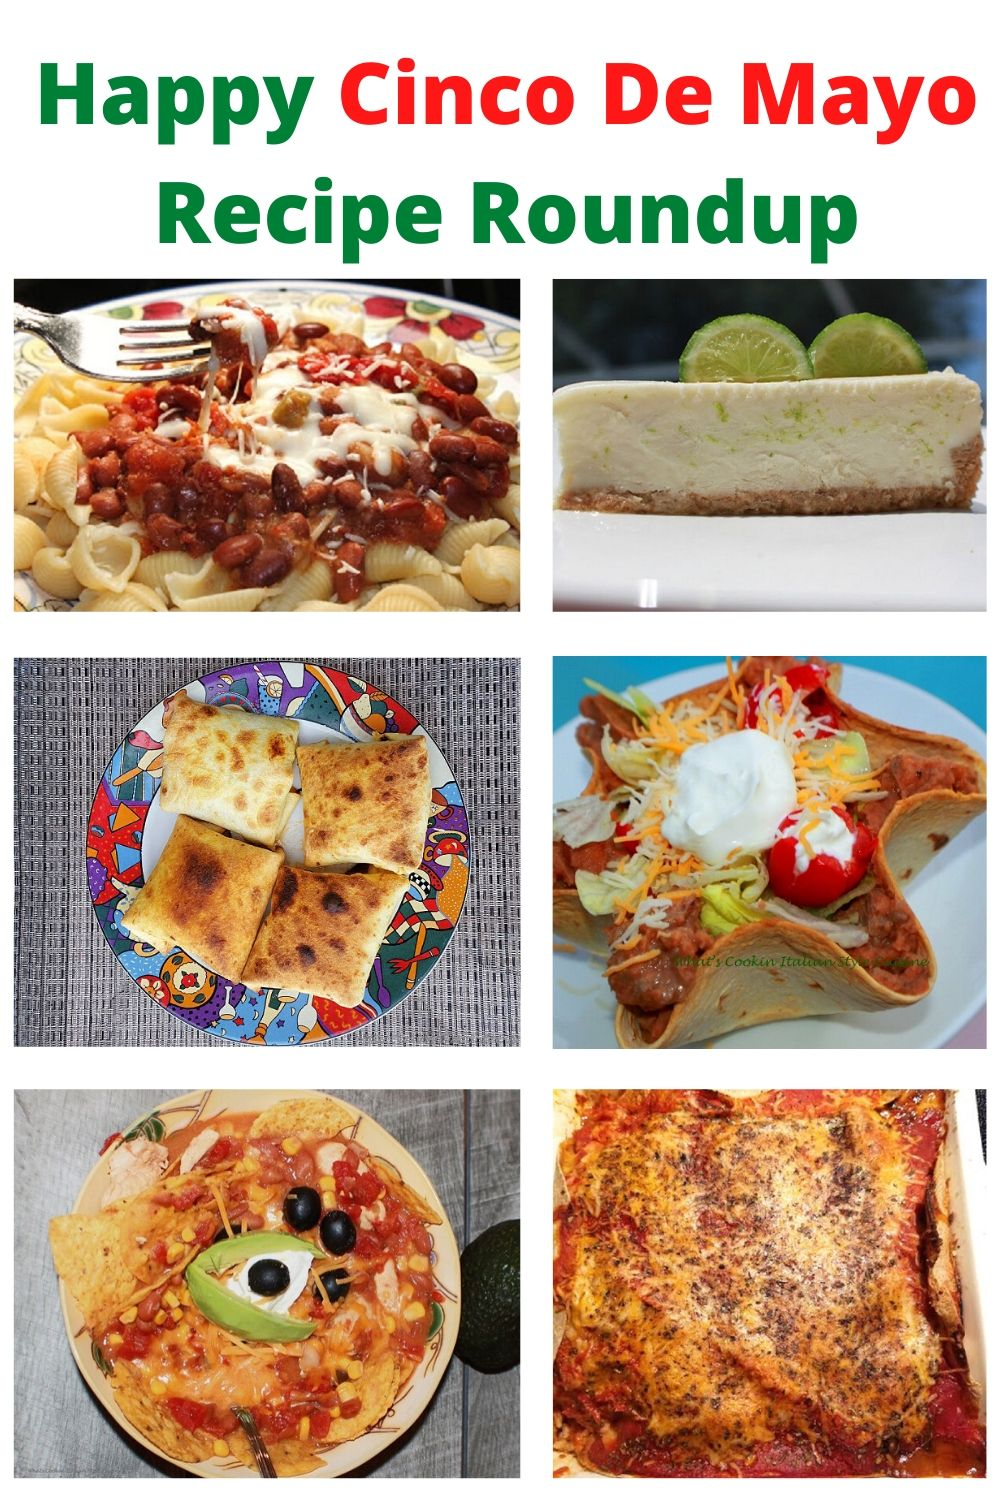 this is a pin for later recipe roundup for Cinco De Mayo on May 5th celebrations